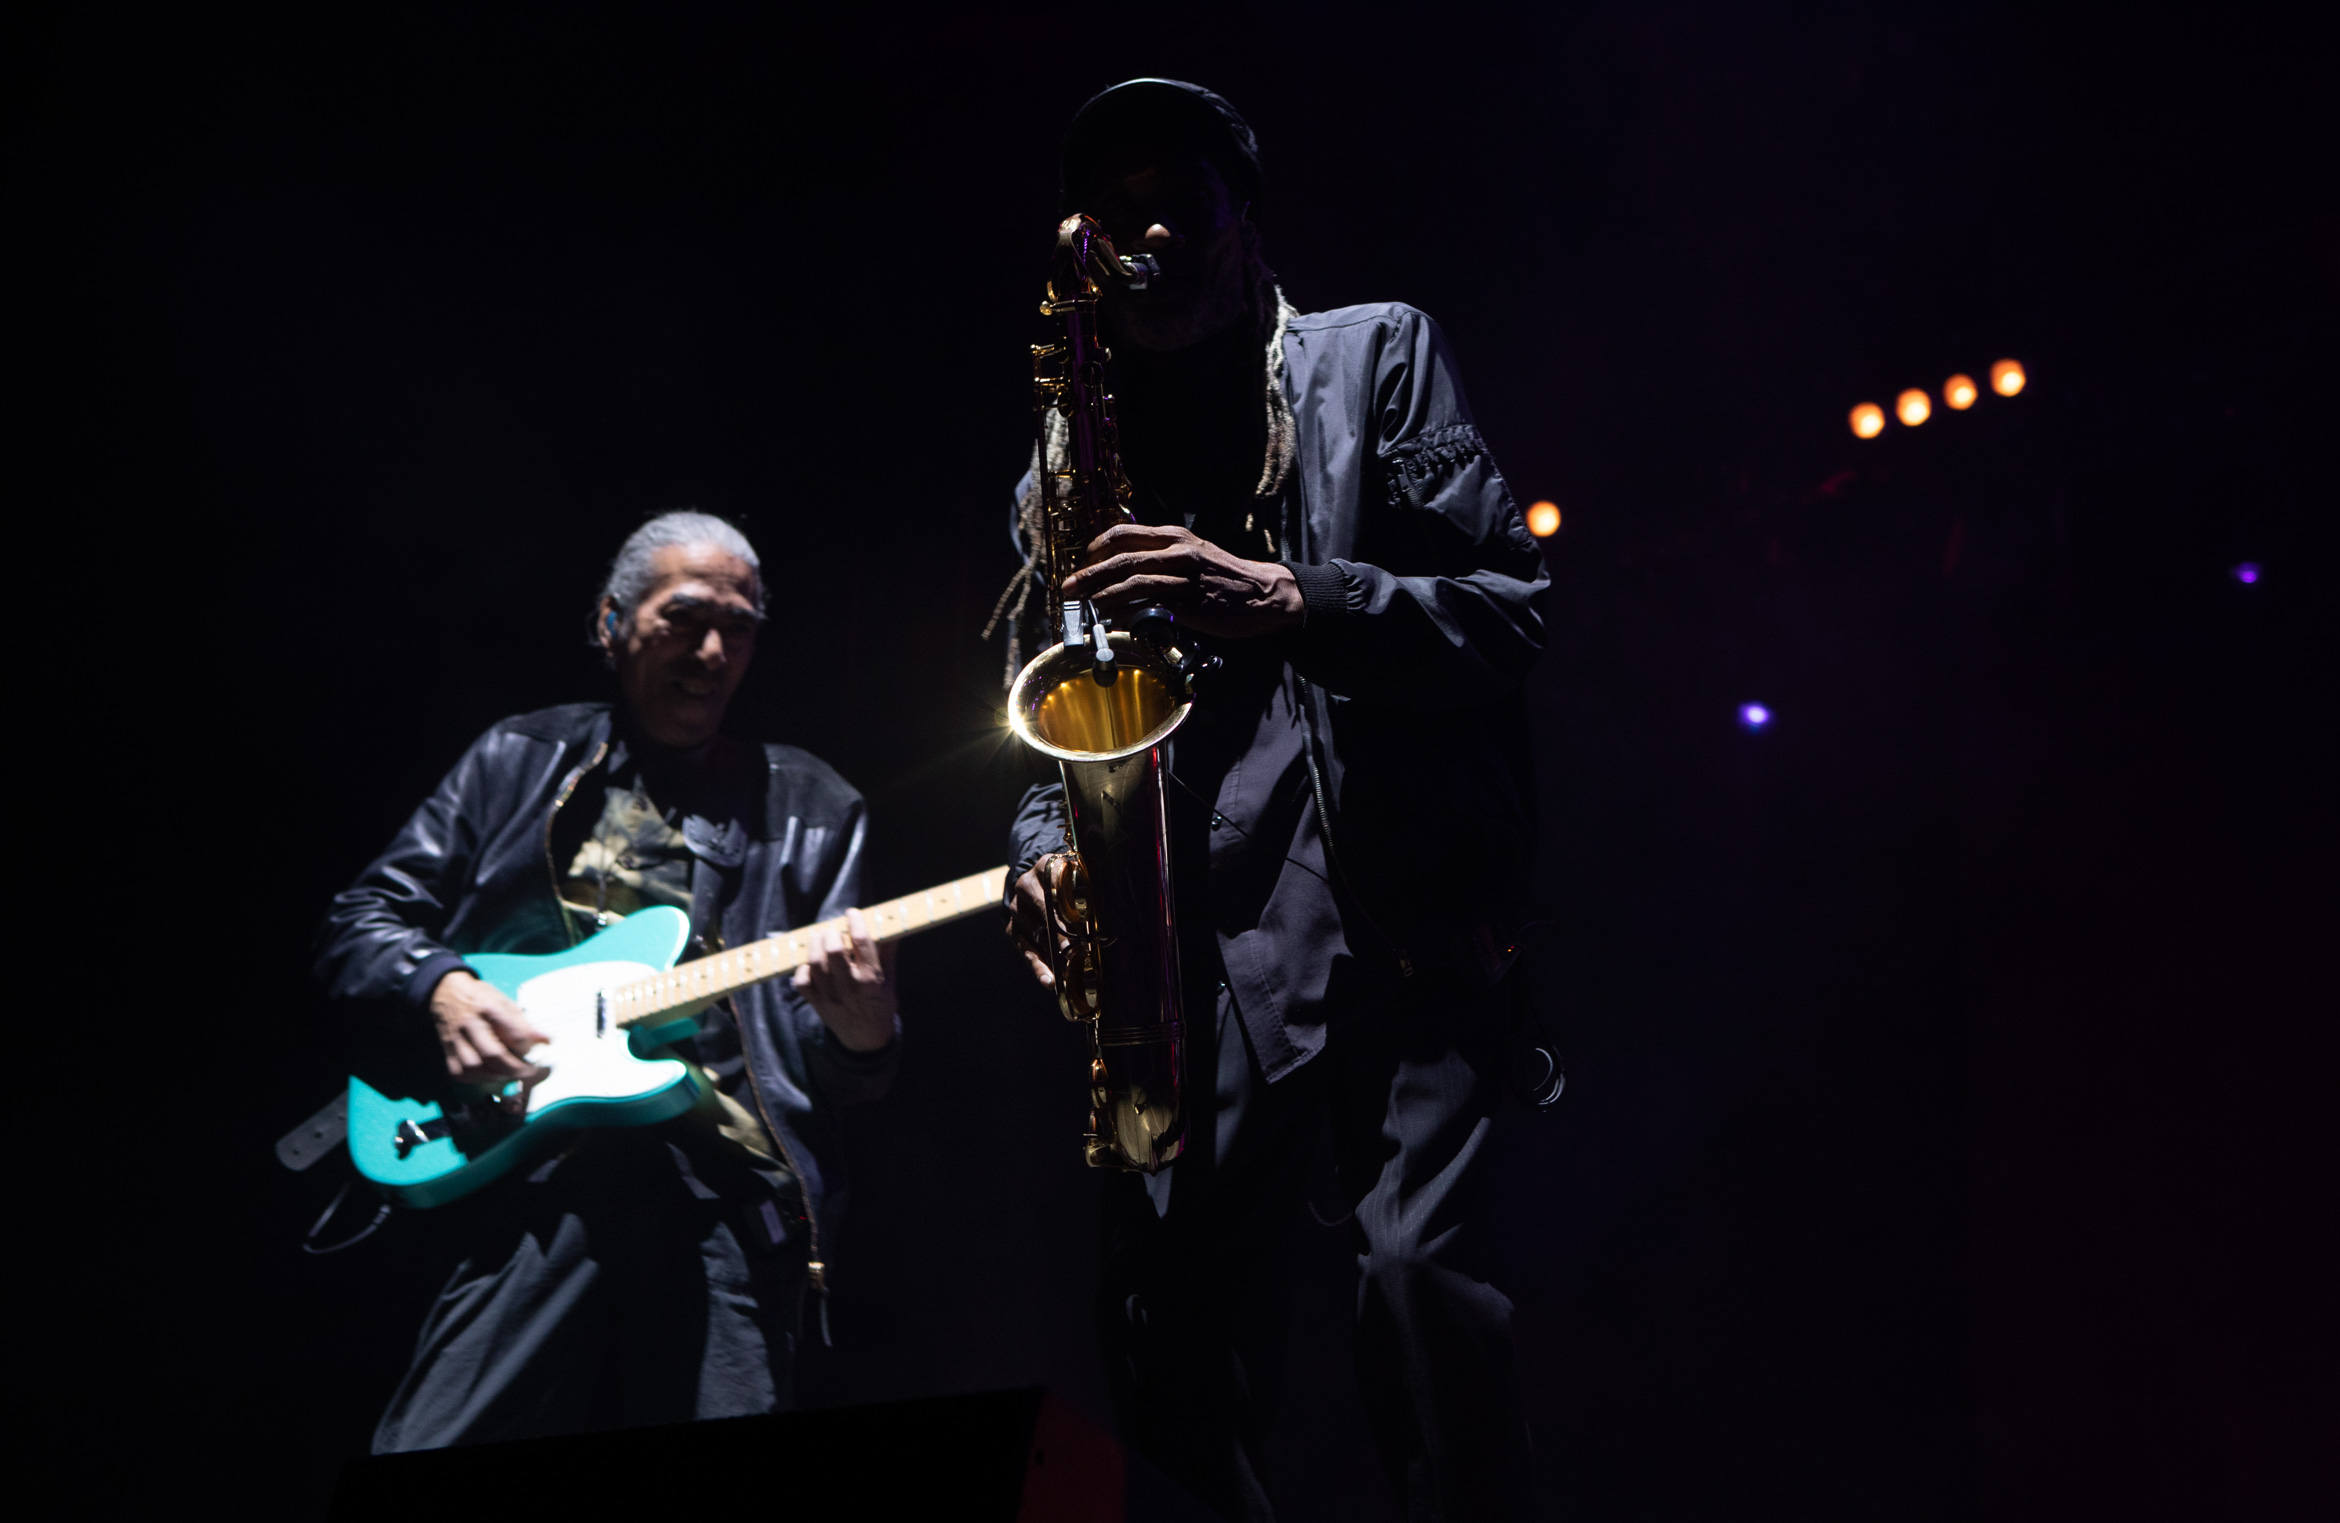 ub40_O2_arena_london_2019_james_watkins_53